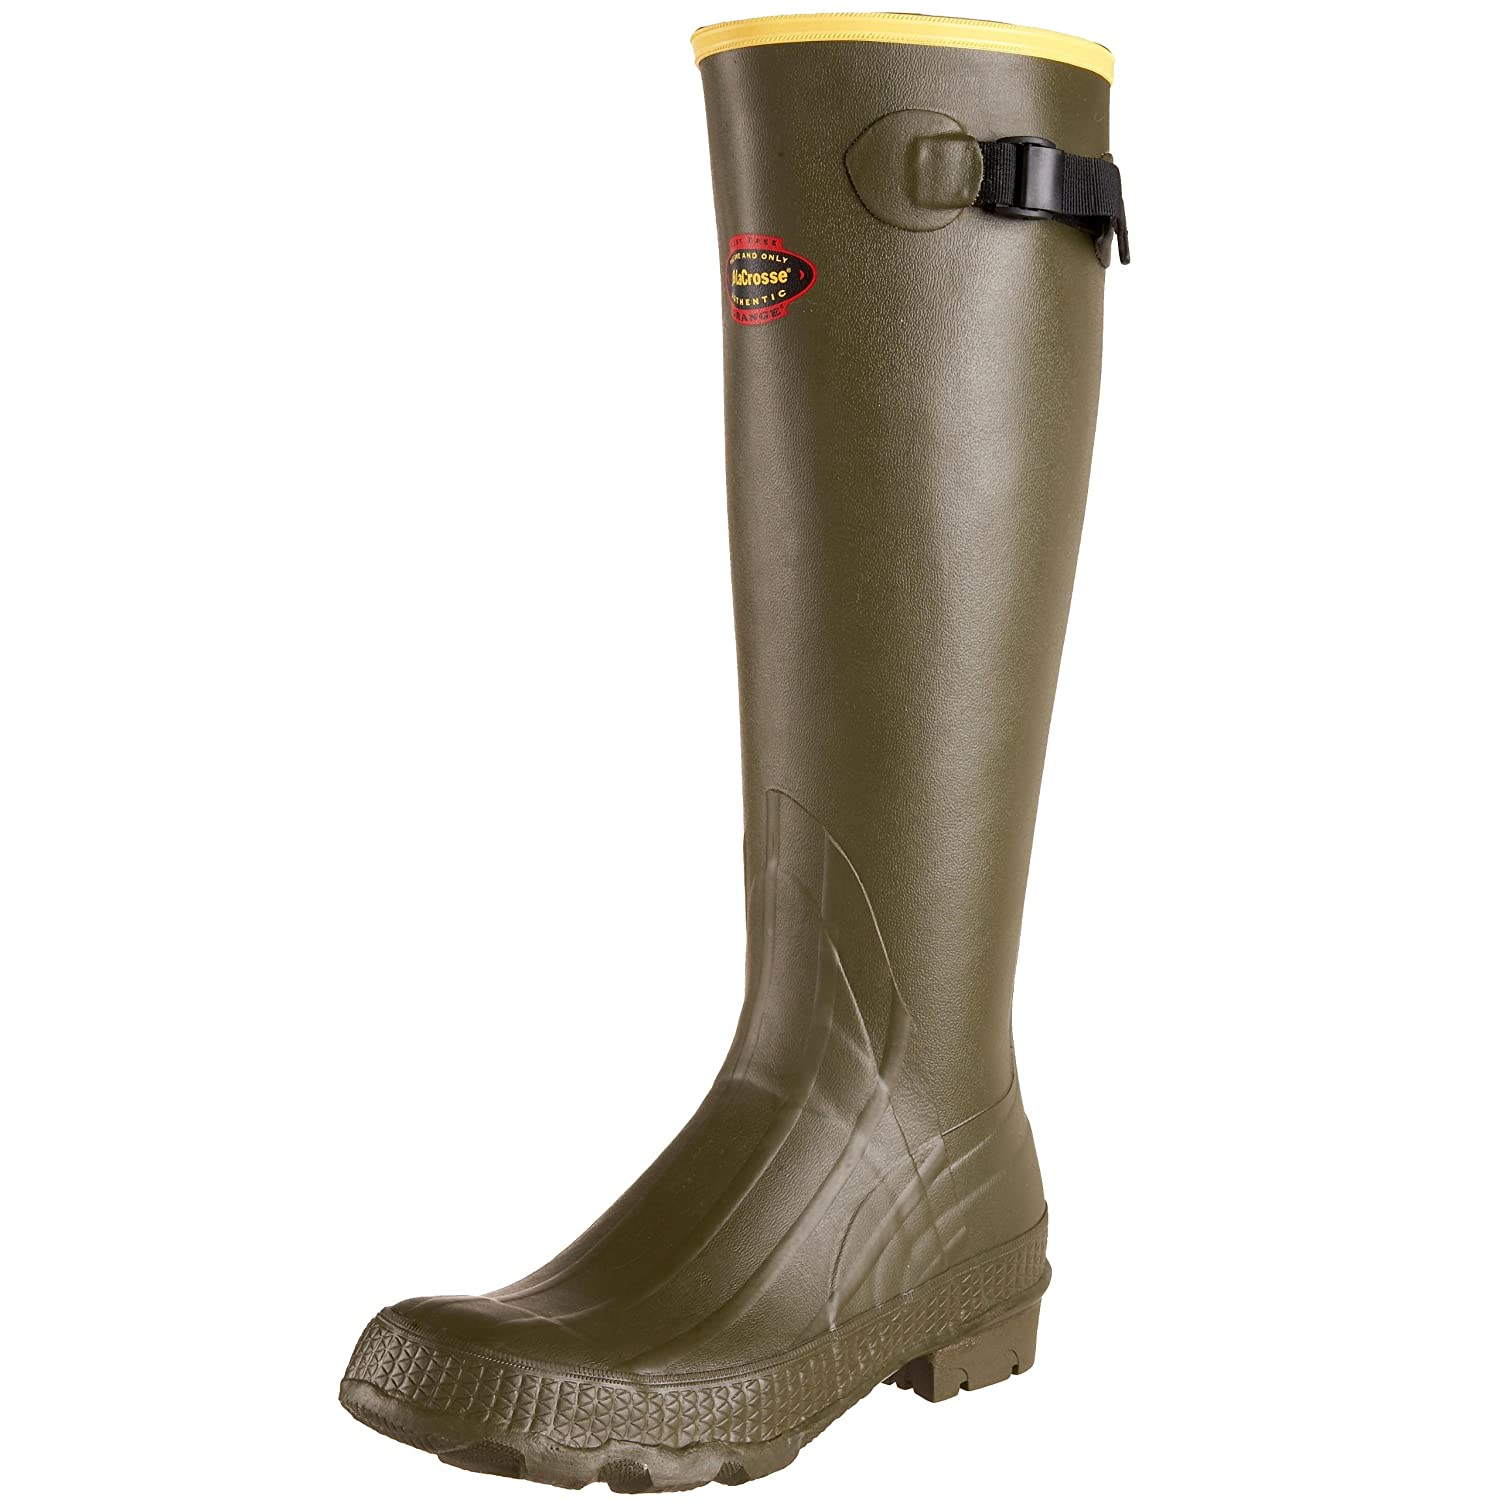 sale retailer 43a3f 407ba The 10 Best Rubber Hunting Boots - Review with Buying Guide 2019